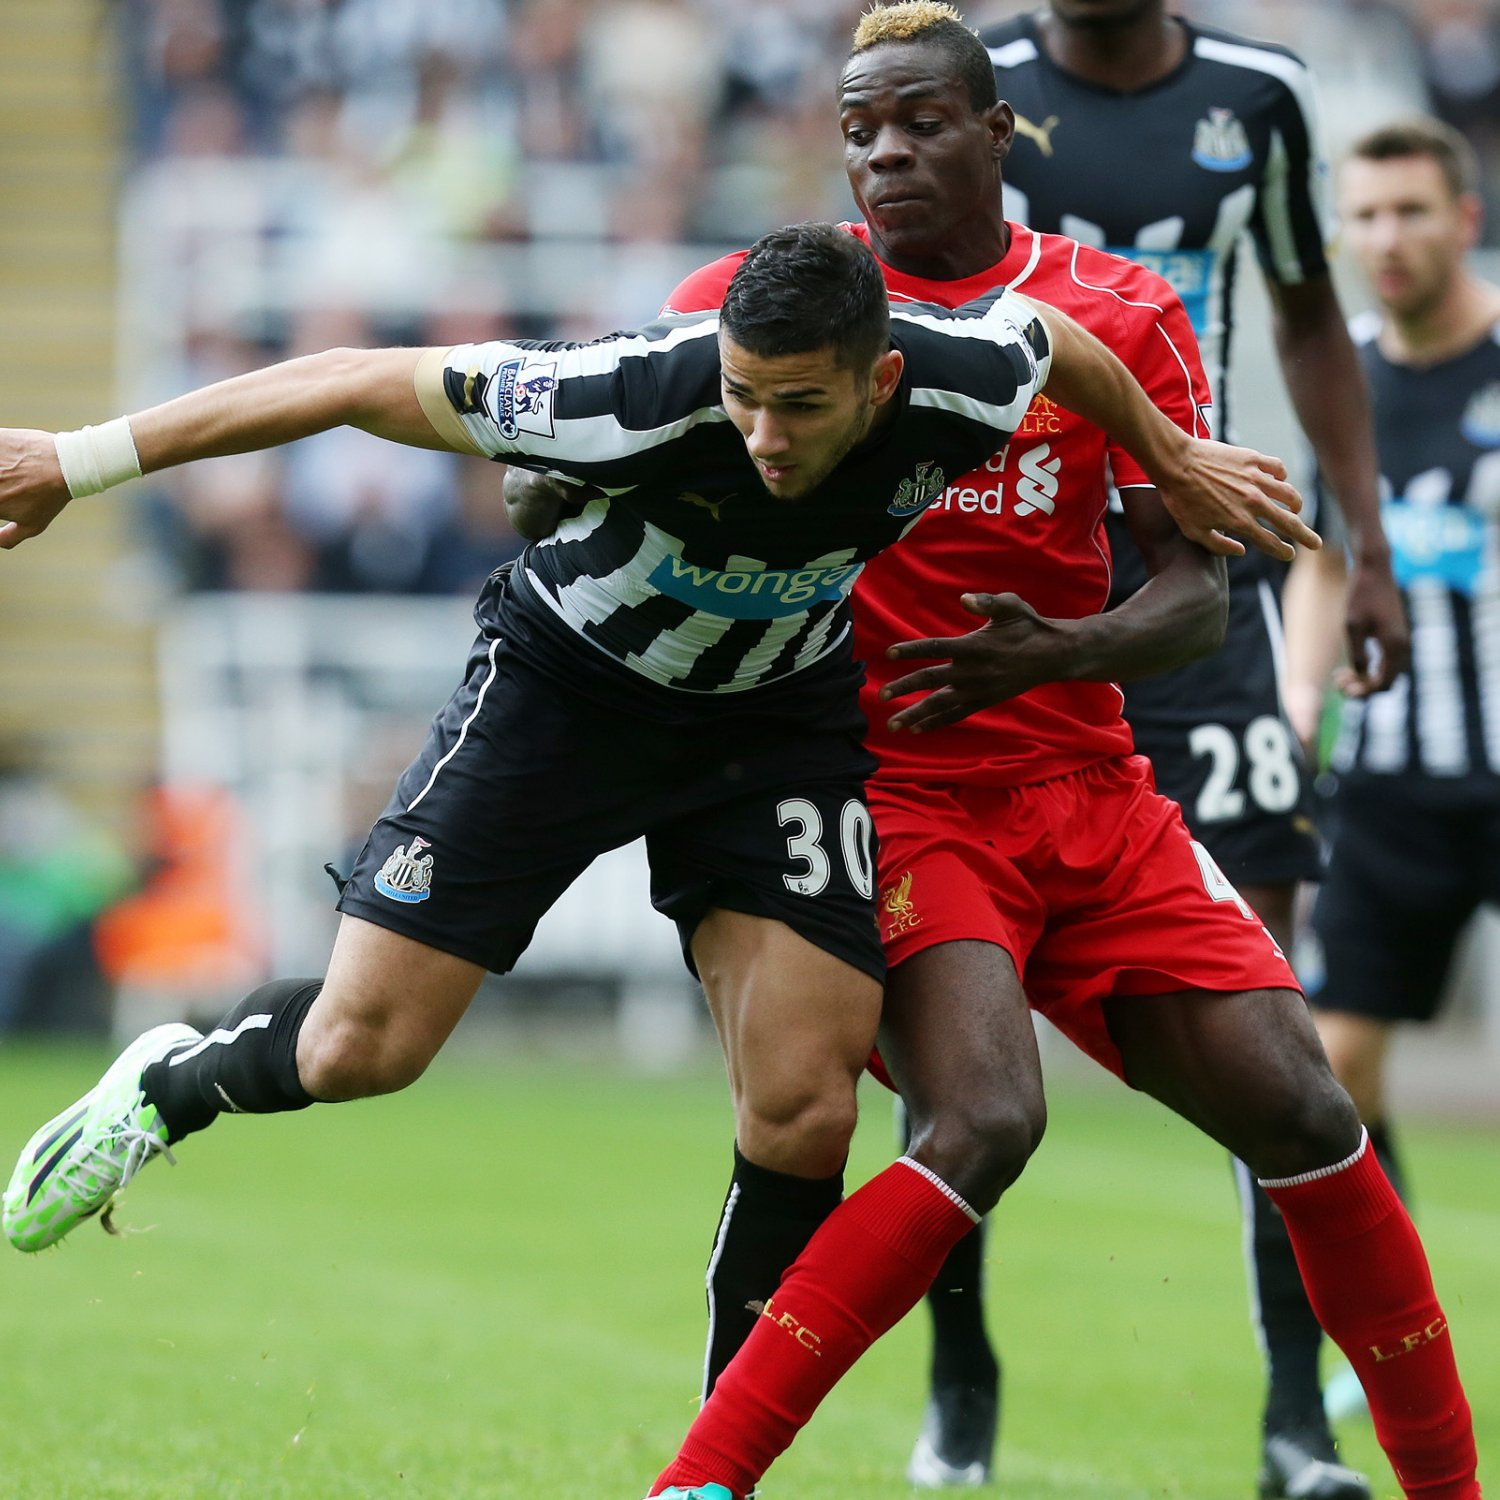 Download Liverpool Vs Middlesbrough 3 0 Epl Video: Liverpool Vs. Newcastle United: Live Score, Highlights